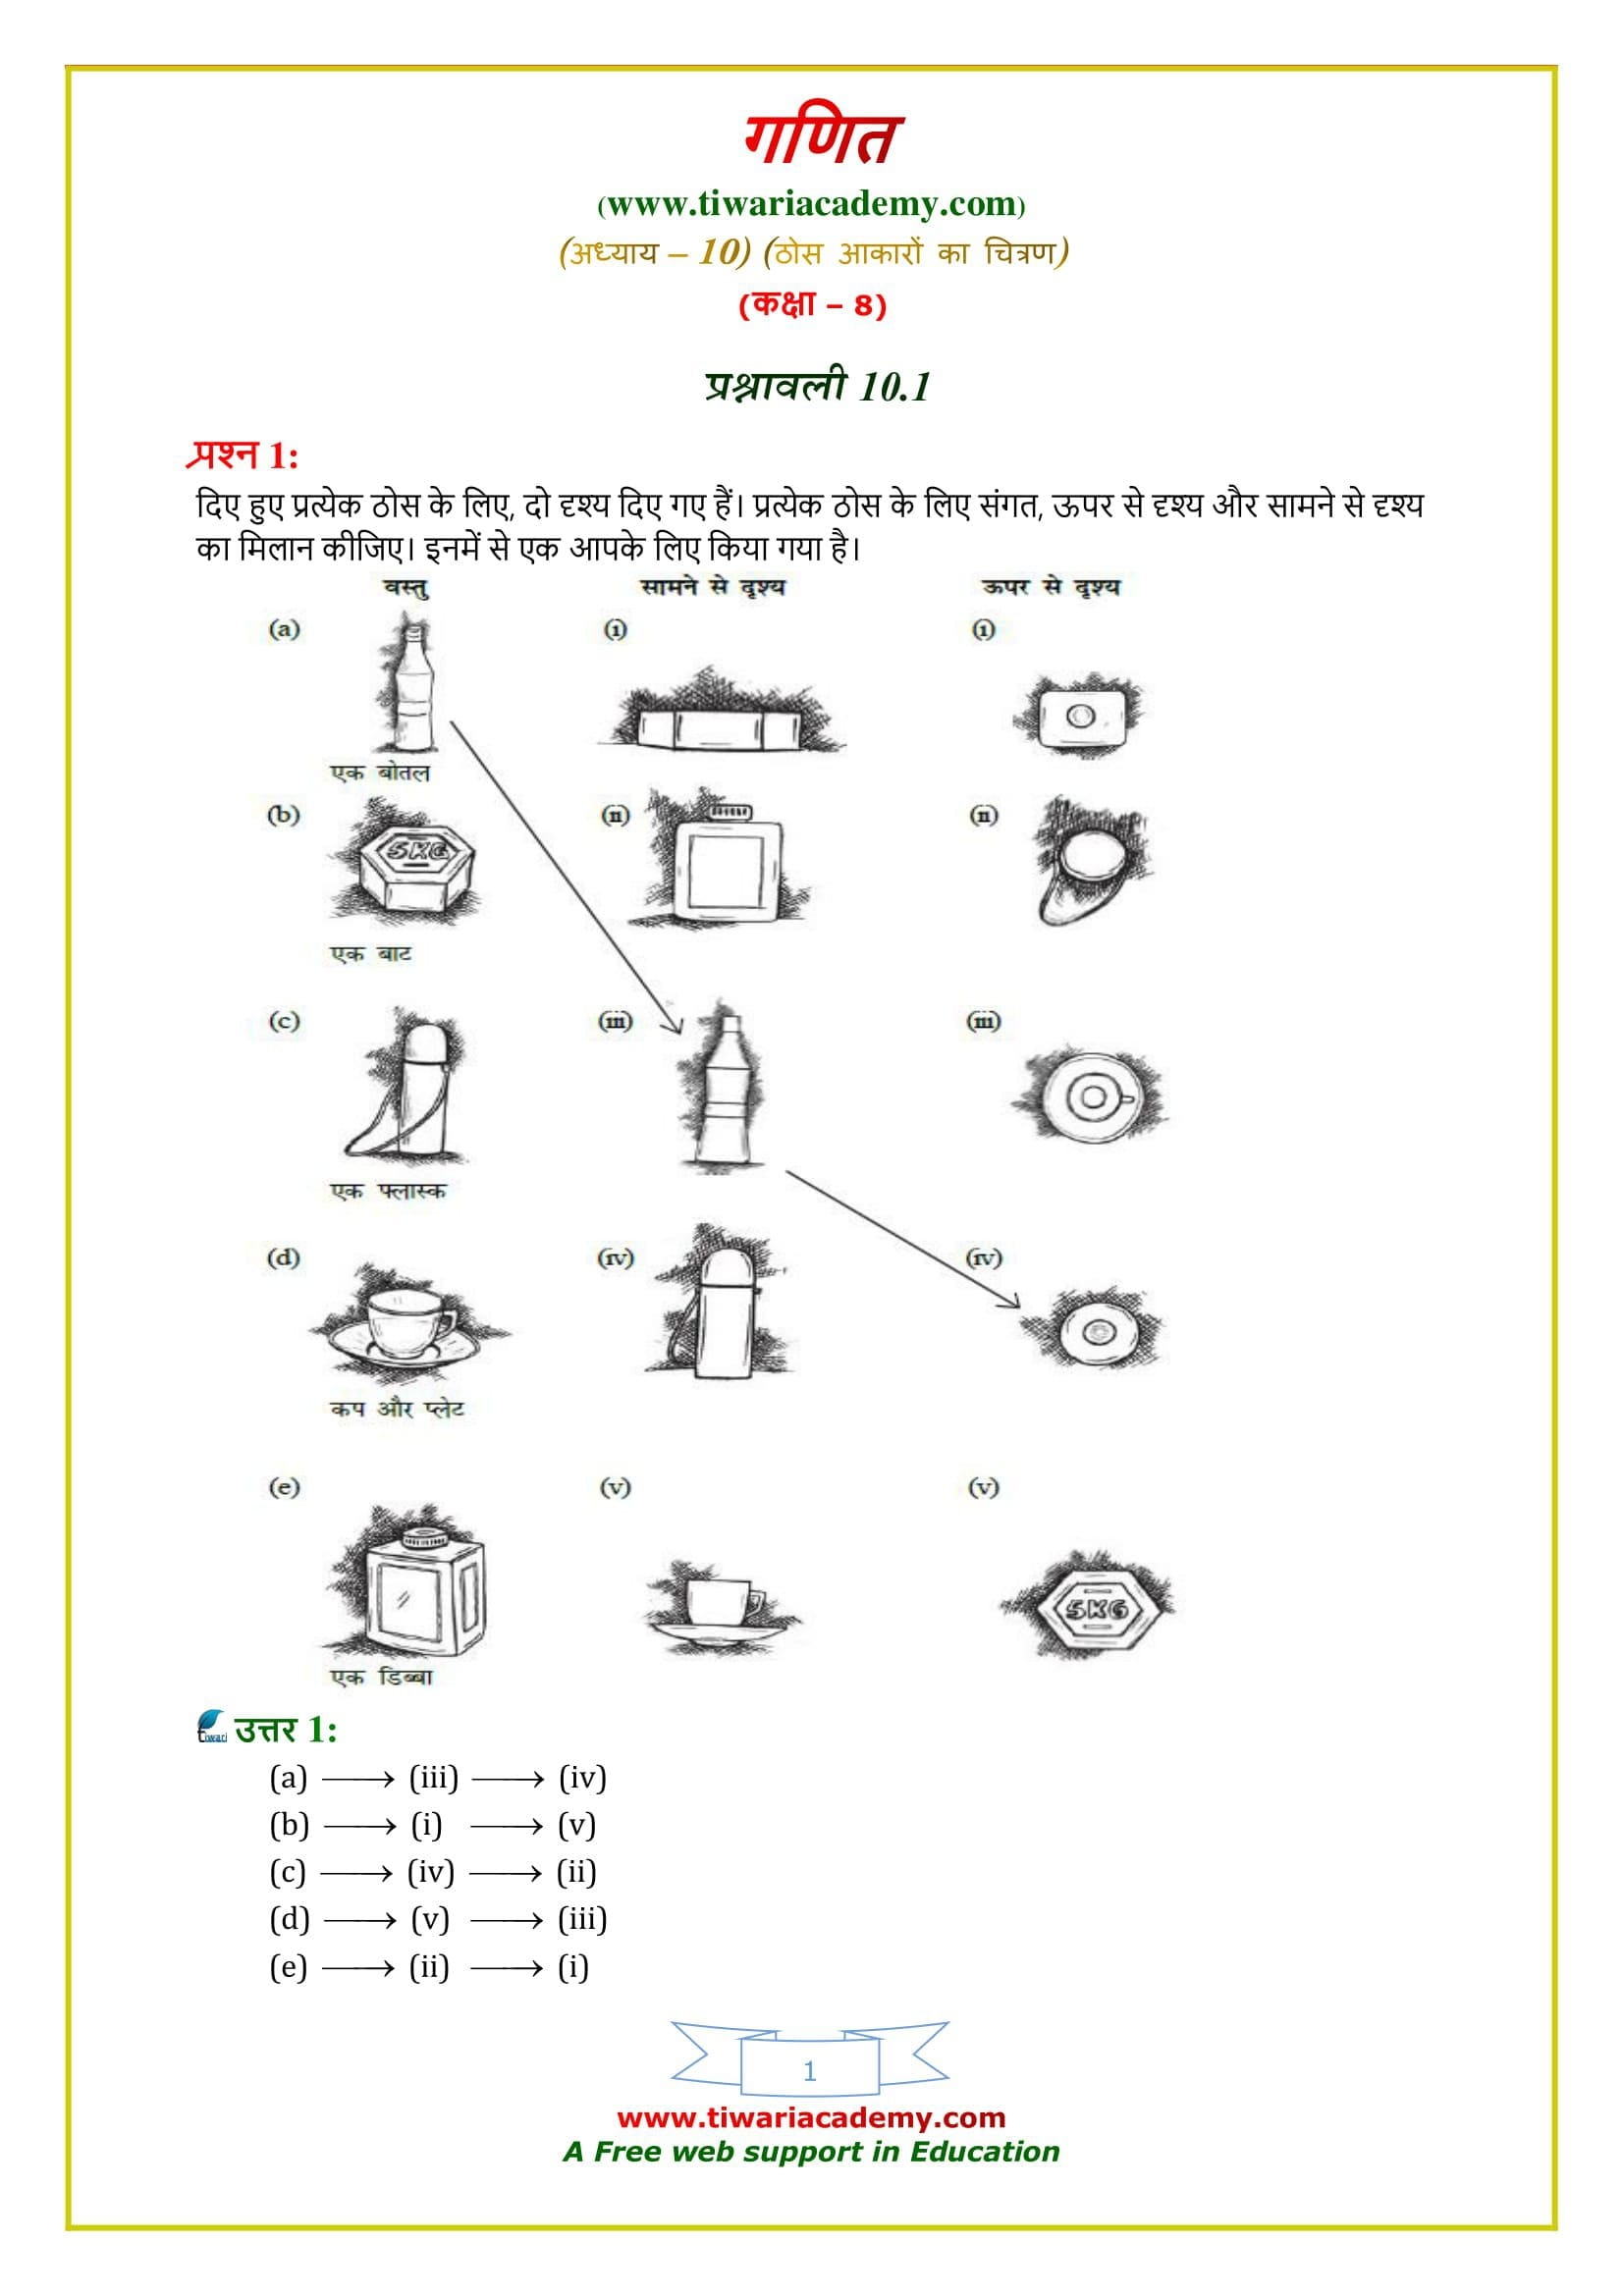 8 Maths Exercise 10.1 solutions in hindi medium